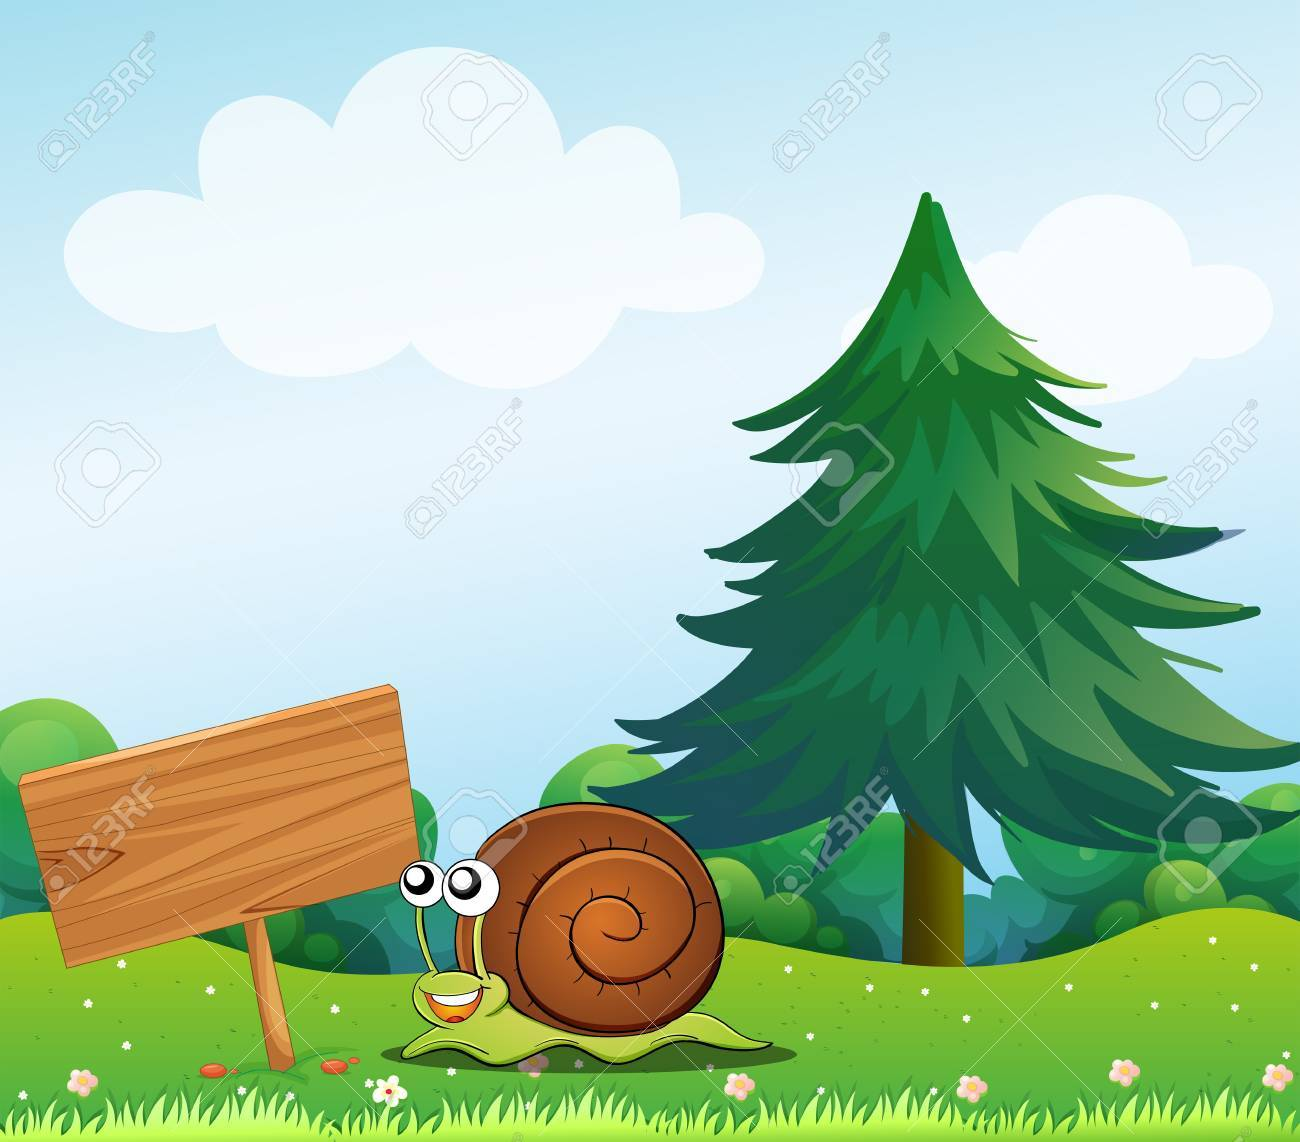 Illustration of a snail near the wooden signboard Stock Vector - 18859657